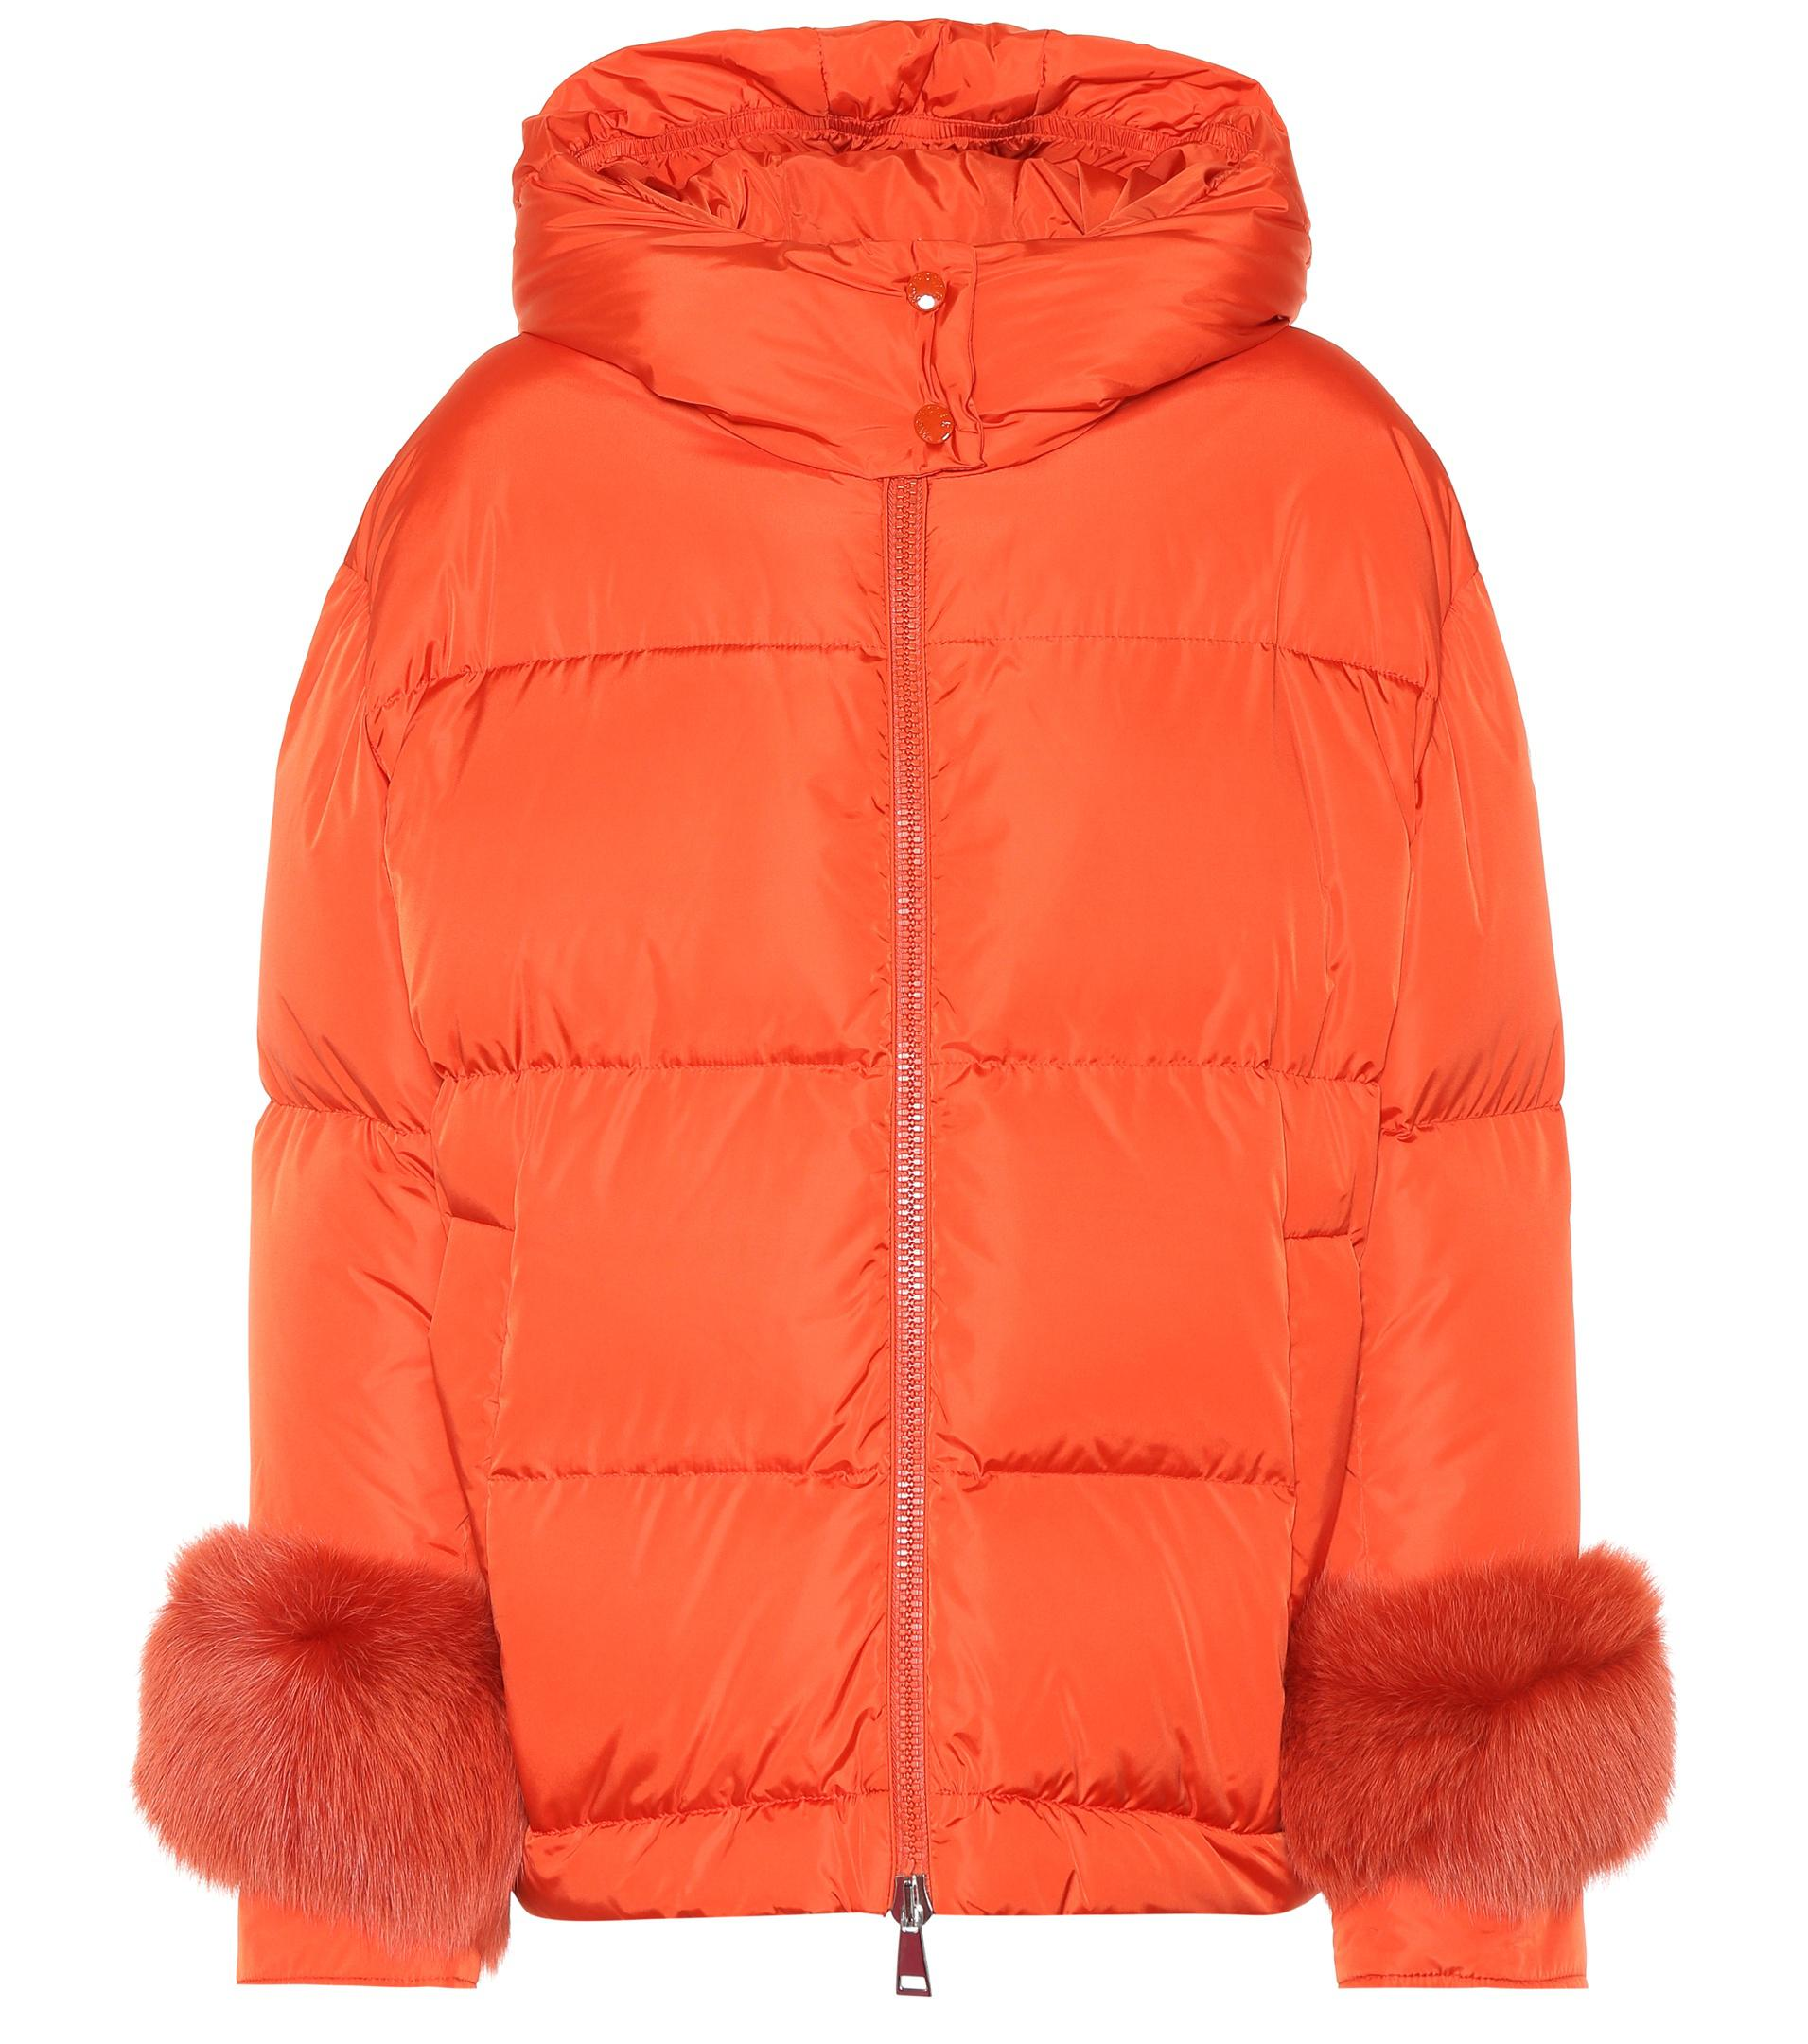 3bbea5bf9 low price moncler down jacket red orange 3aef7 769fd